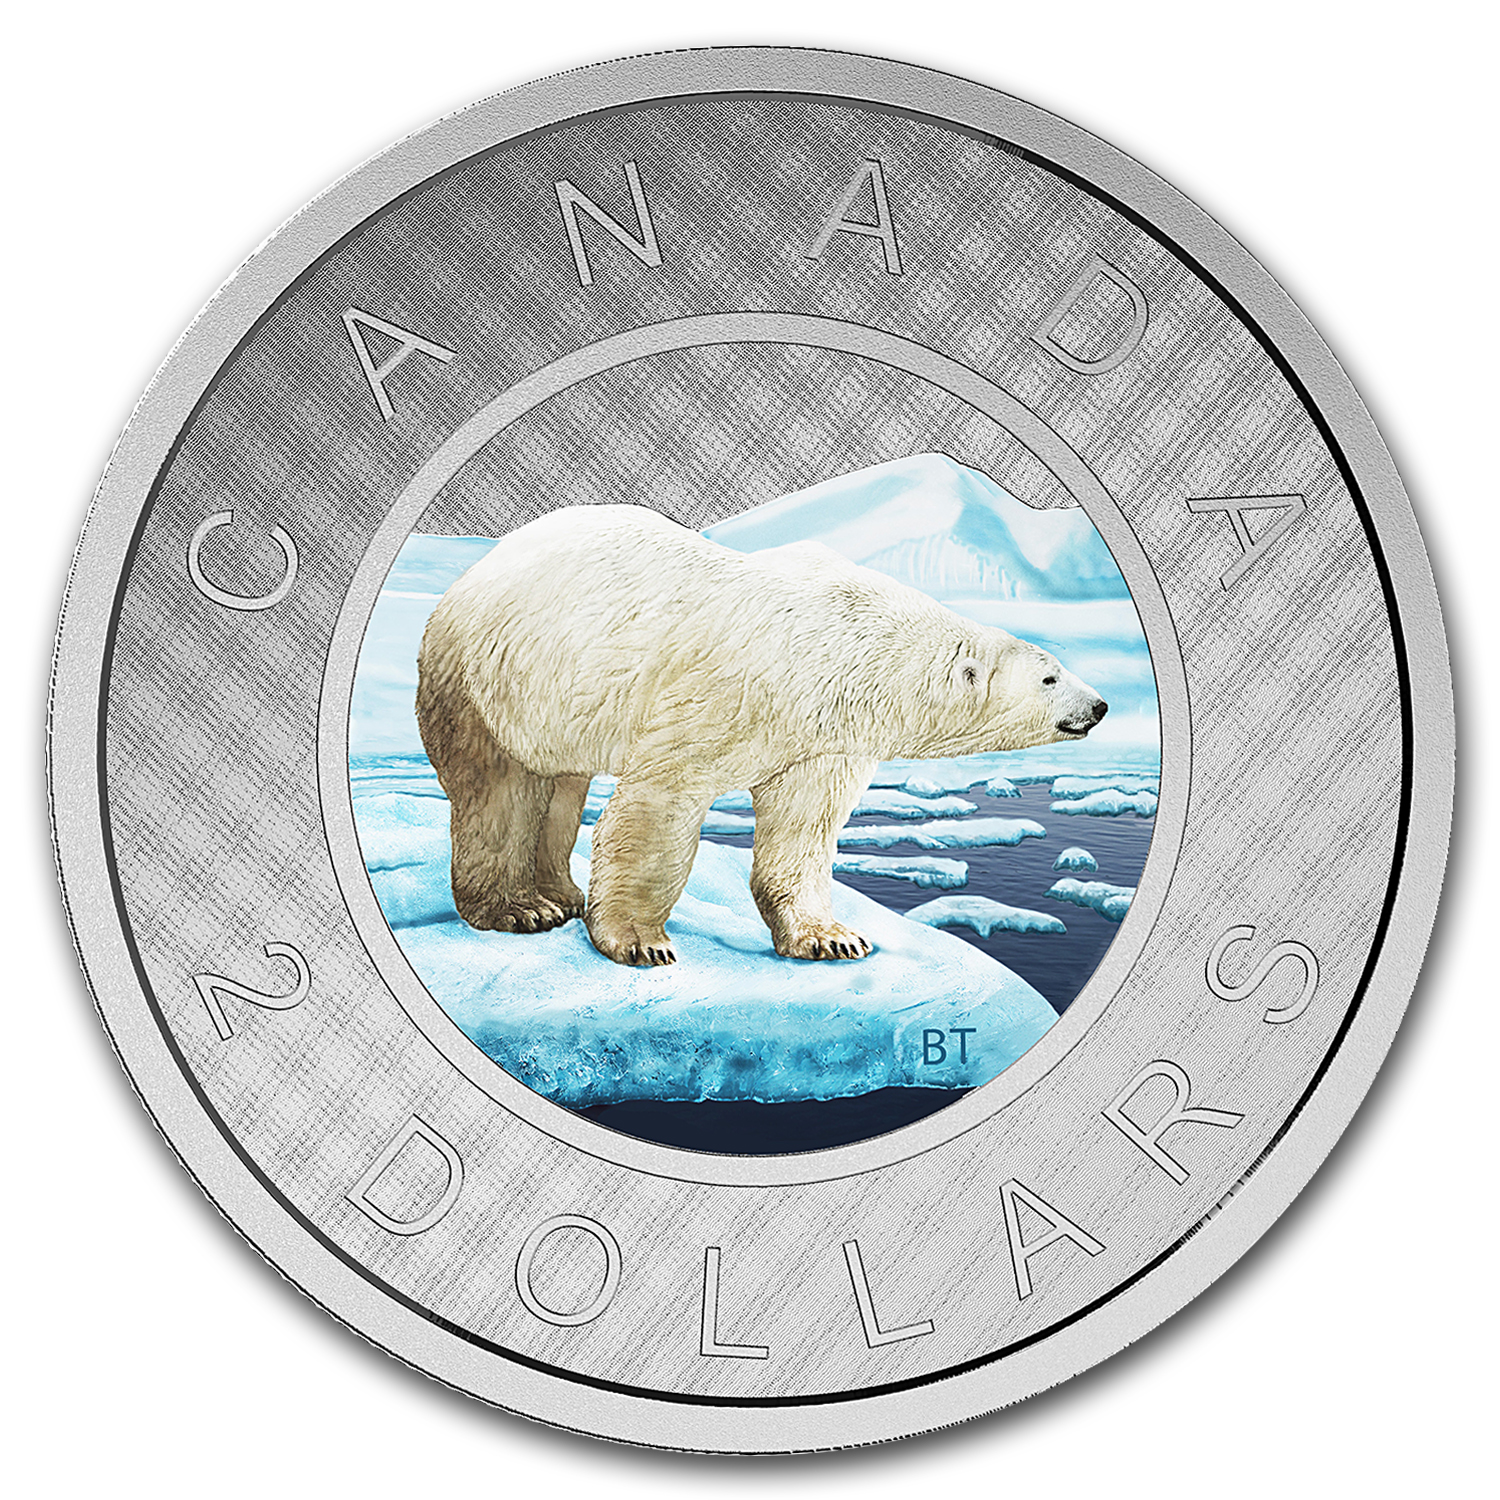 2016 Canada 5 oz Silver $2 Big Coin Series 2 Dollar Coin